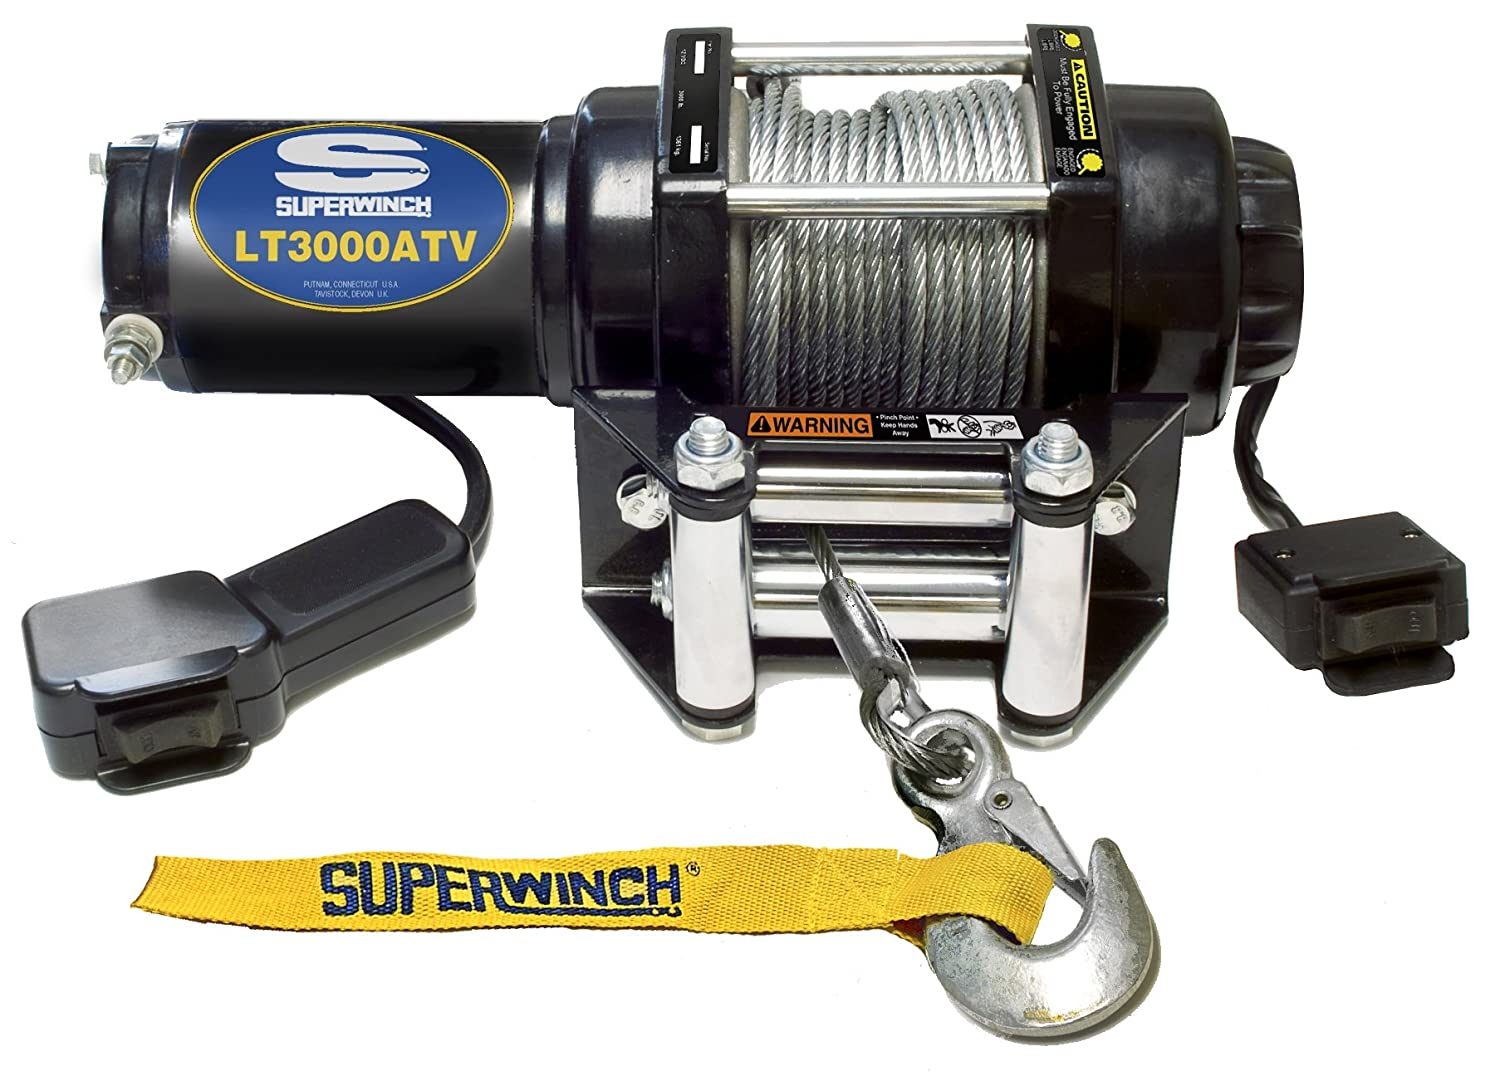 Superwinch 1130220 LT3000ATV 12 VDC winch 3,000lbs/1360kg with roller on